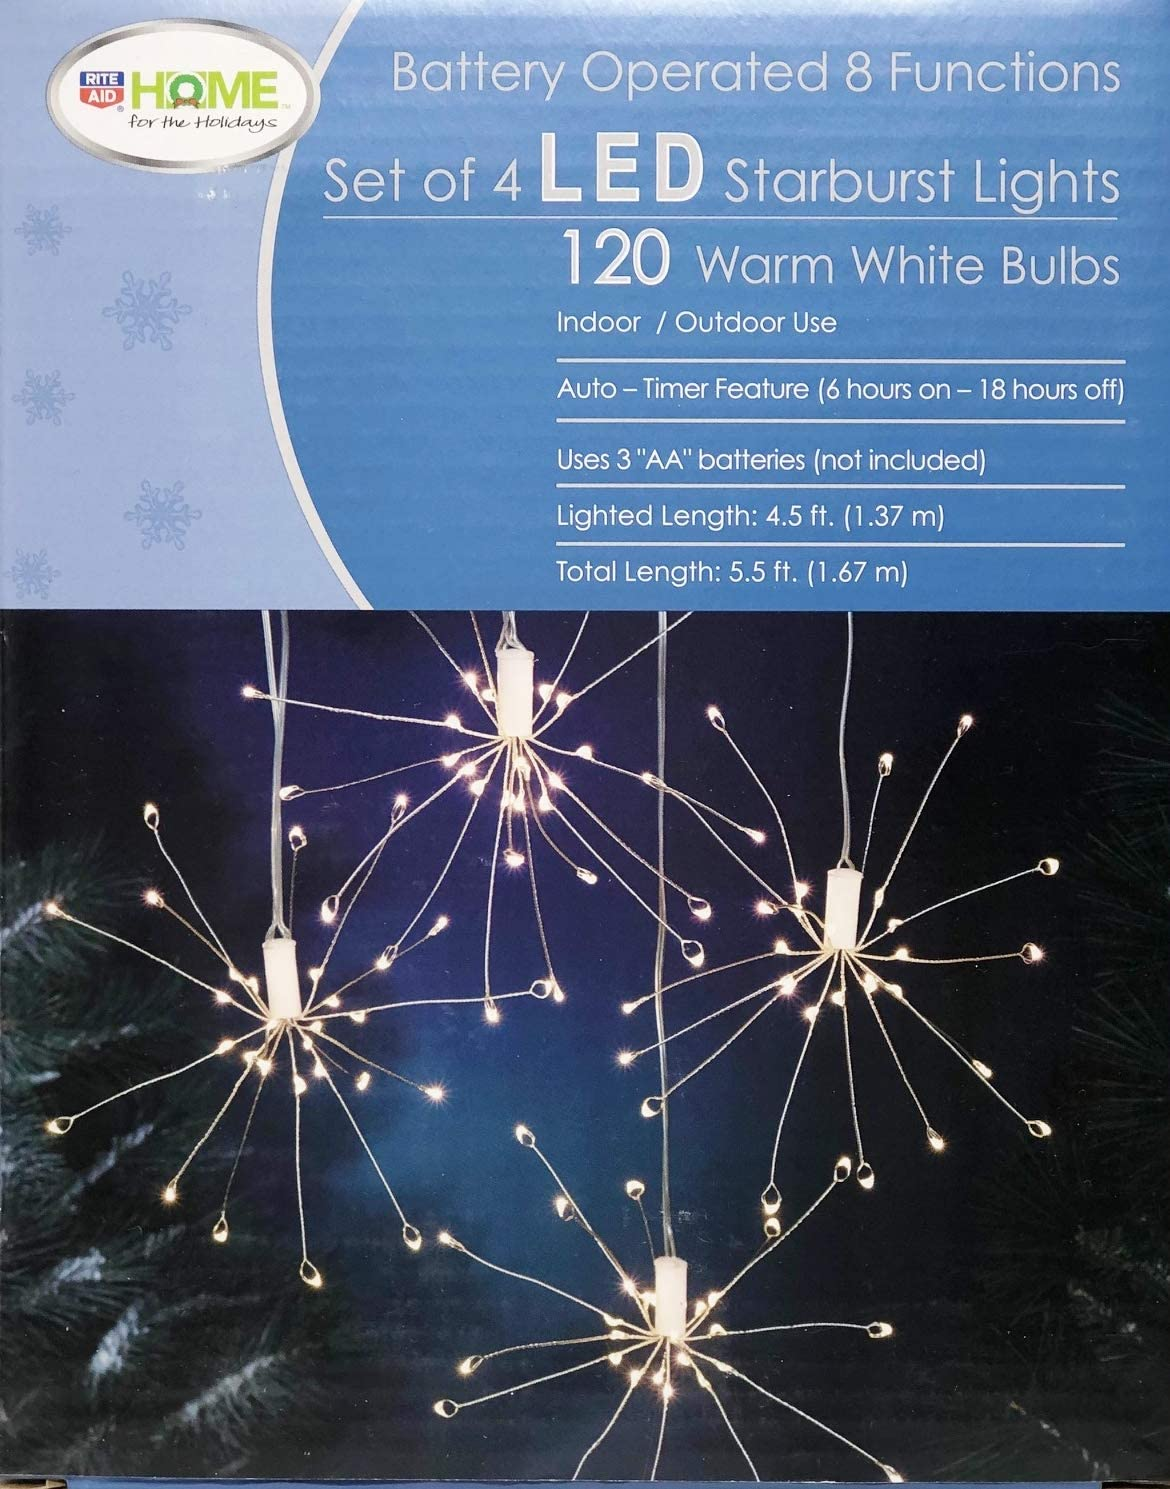 Set of 4 Battery Operated LED Starburst Christmas Lights with Auto Timer (4.5 Feet)